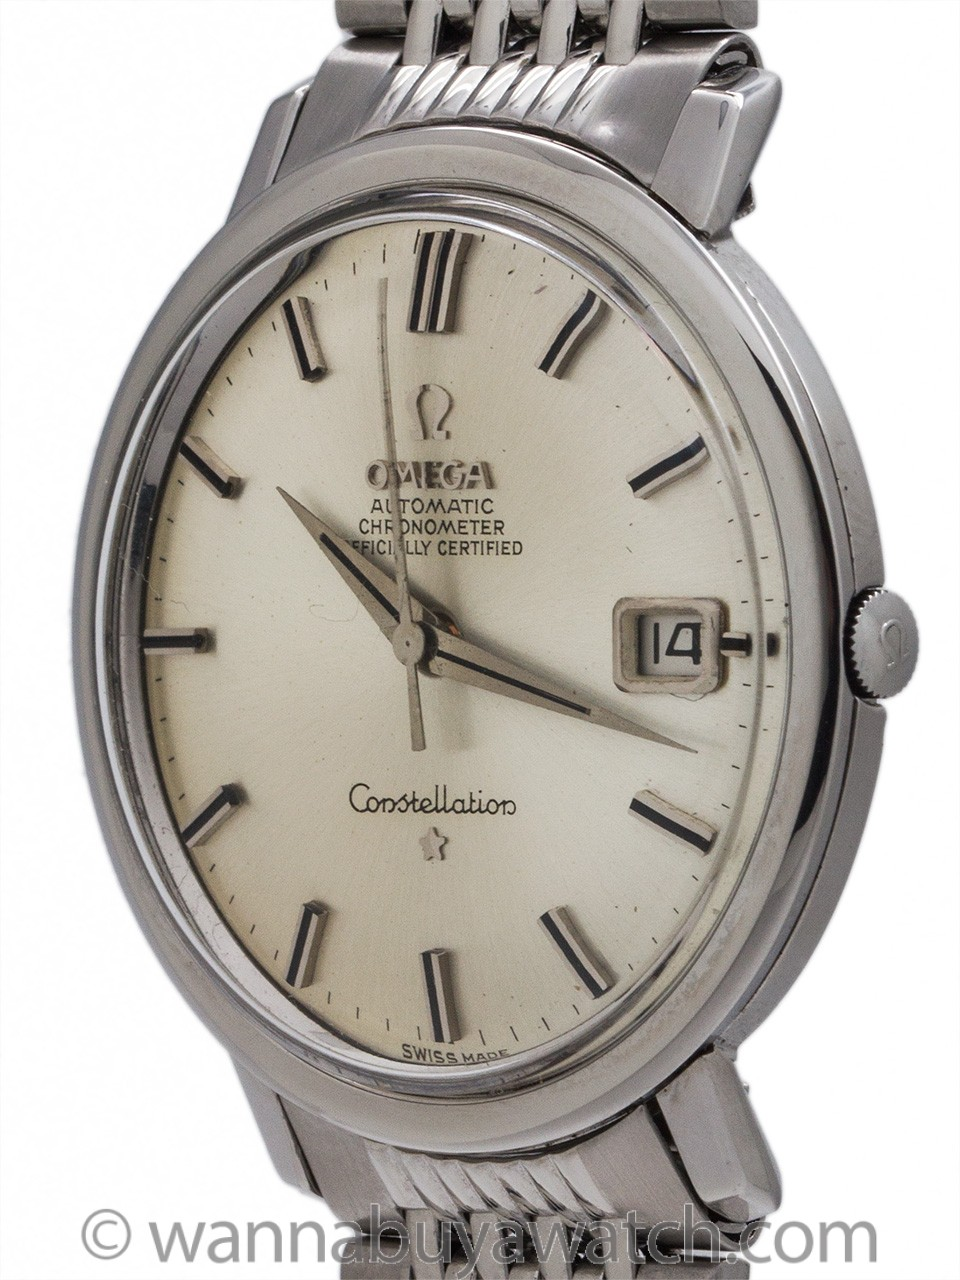 Omega Constellation ref 168.004 Stainless Steel circa 1963